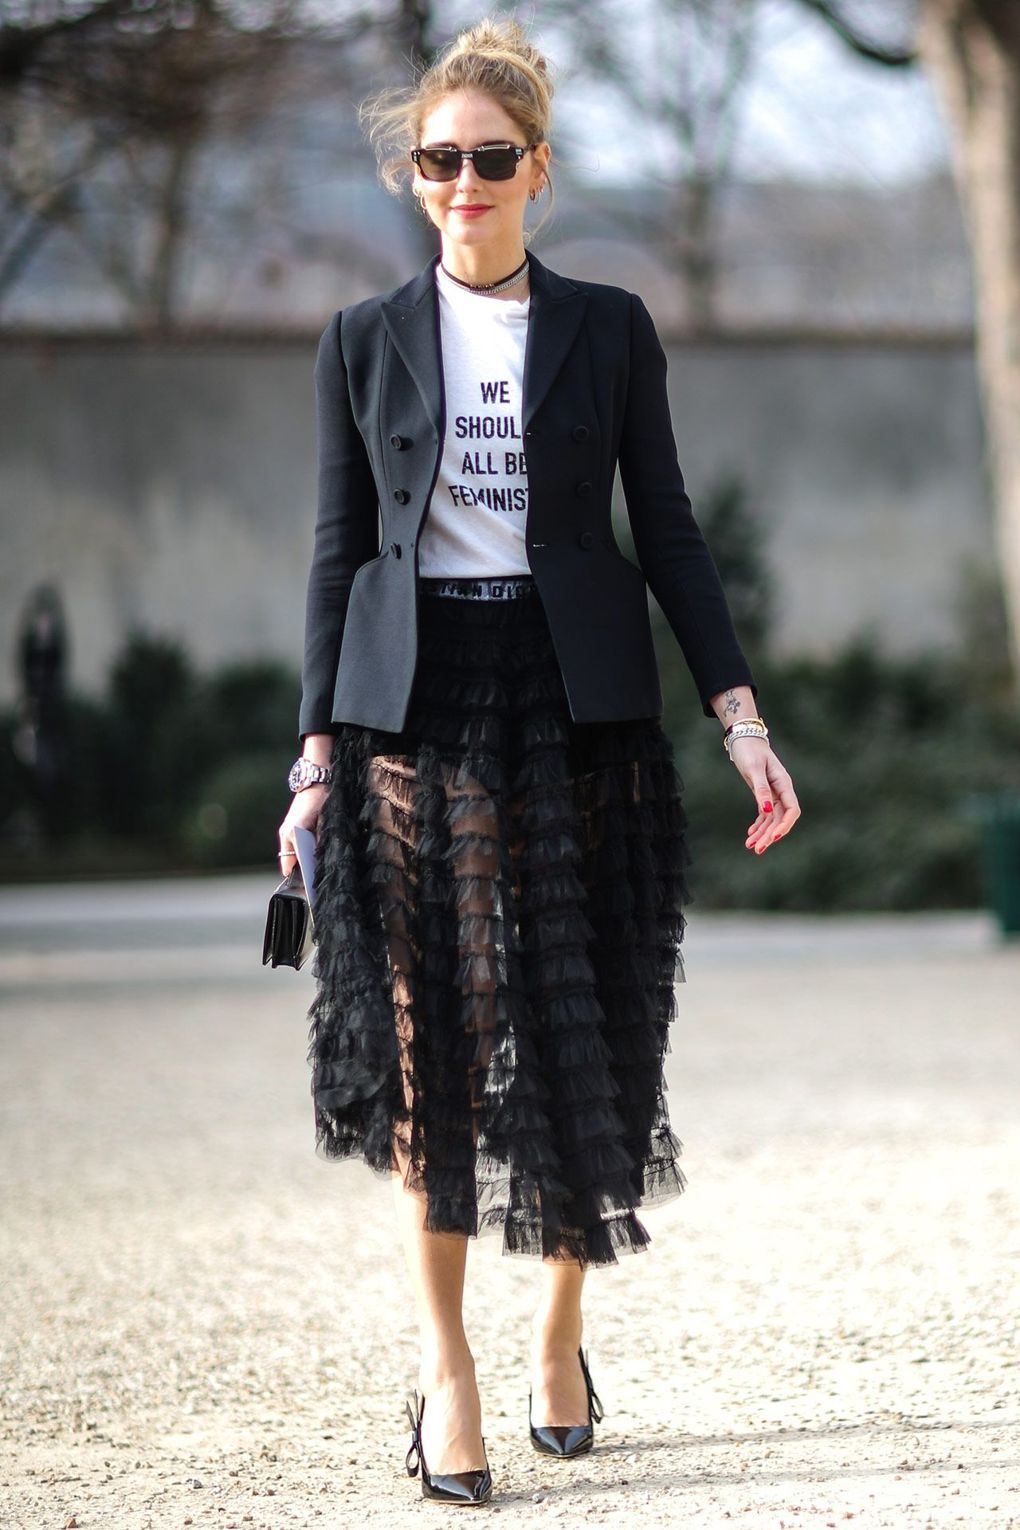 1b4ad96da In this season most wanted ' We should all be Feminists' tee, a black  meshed skirt, and black heels; Chiara attends the Christian Dior Haute  Couture Spring ...